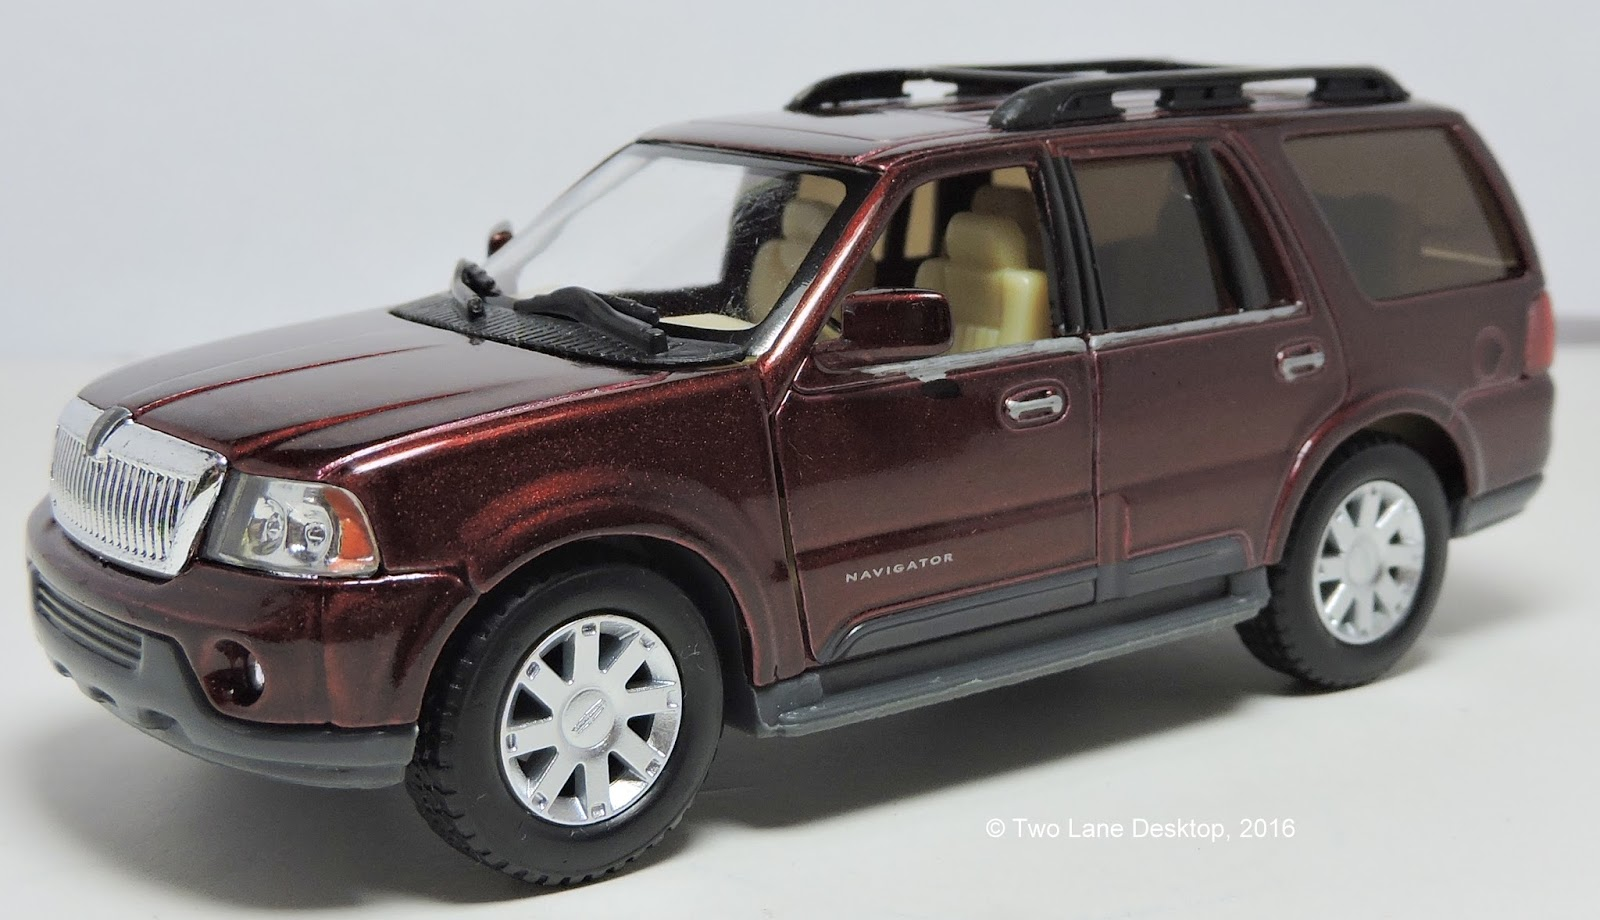 Two Lane Desktop Kinsmart And Matchbox 2003 Lincoln Navigator